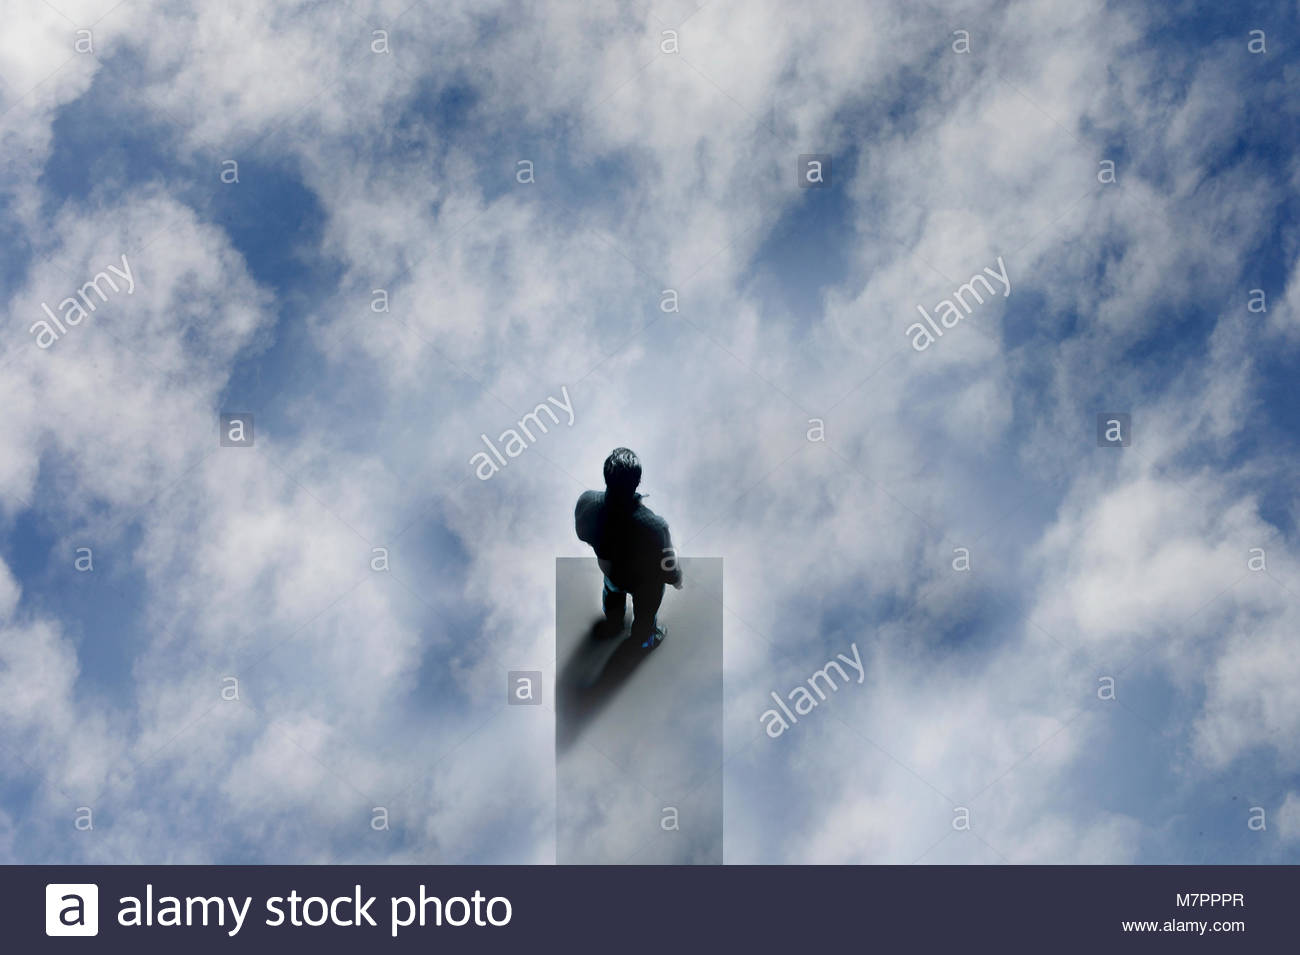 Overhead view of man at the edge of diving board in the sky - Stock Image